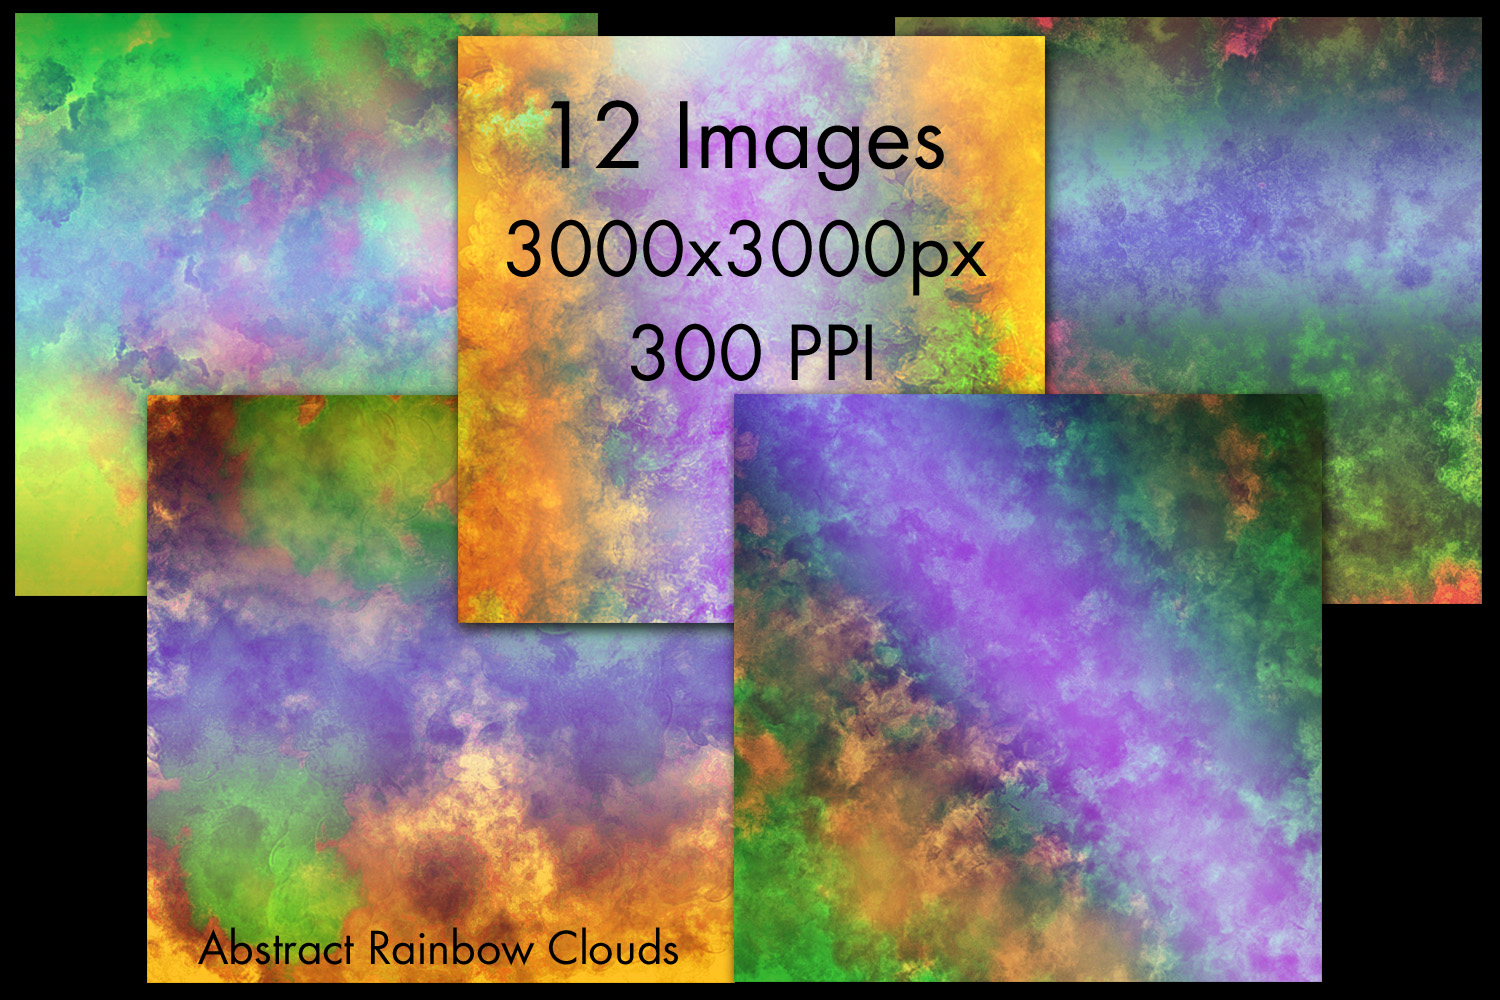 Abstract Rainbow Clouds Backgrounds - 12 Image Set example image 2